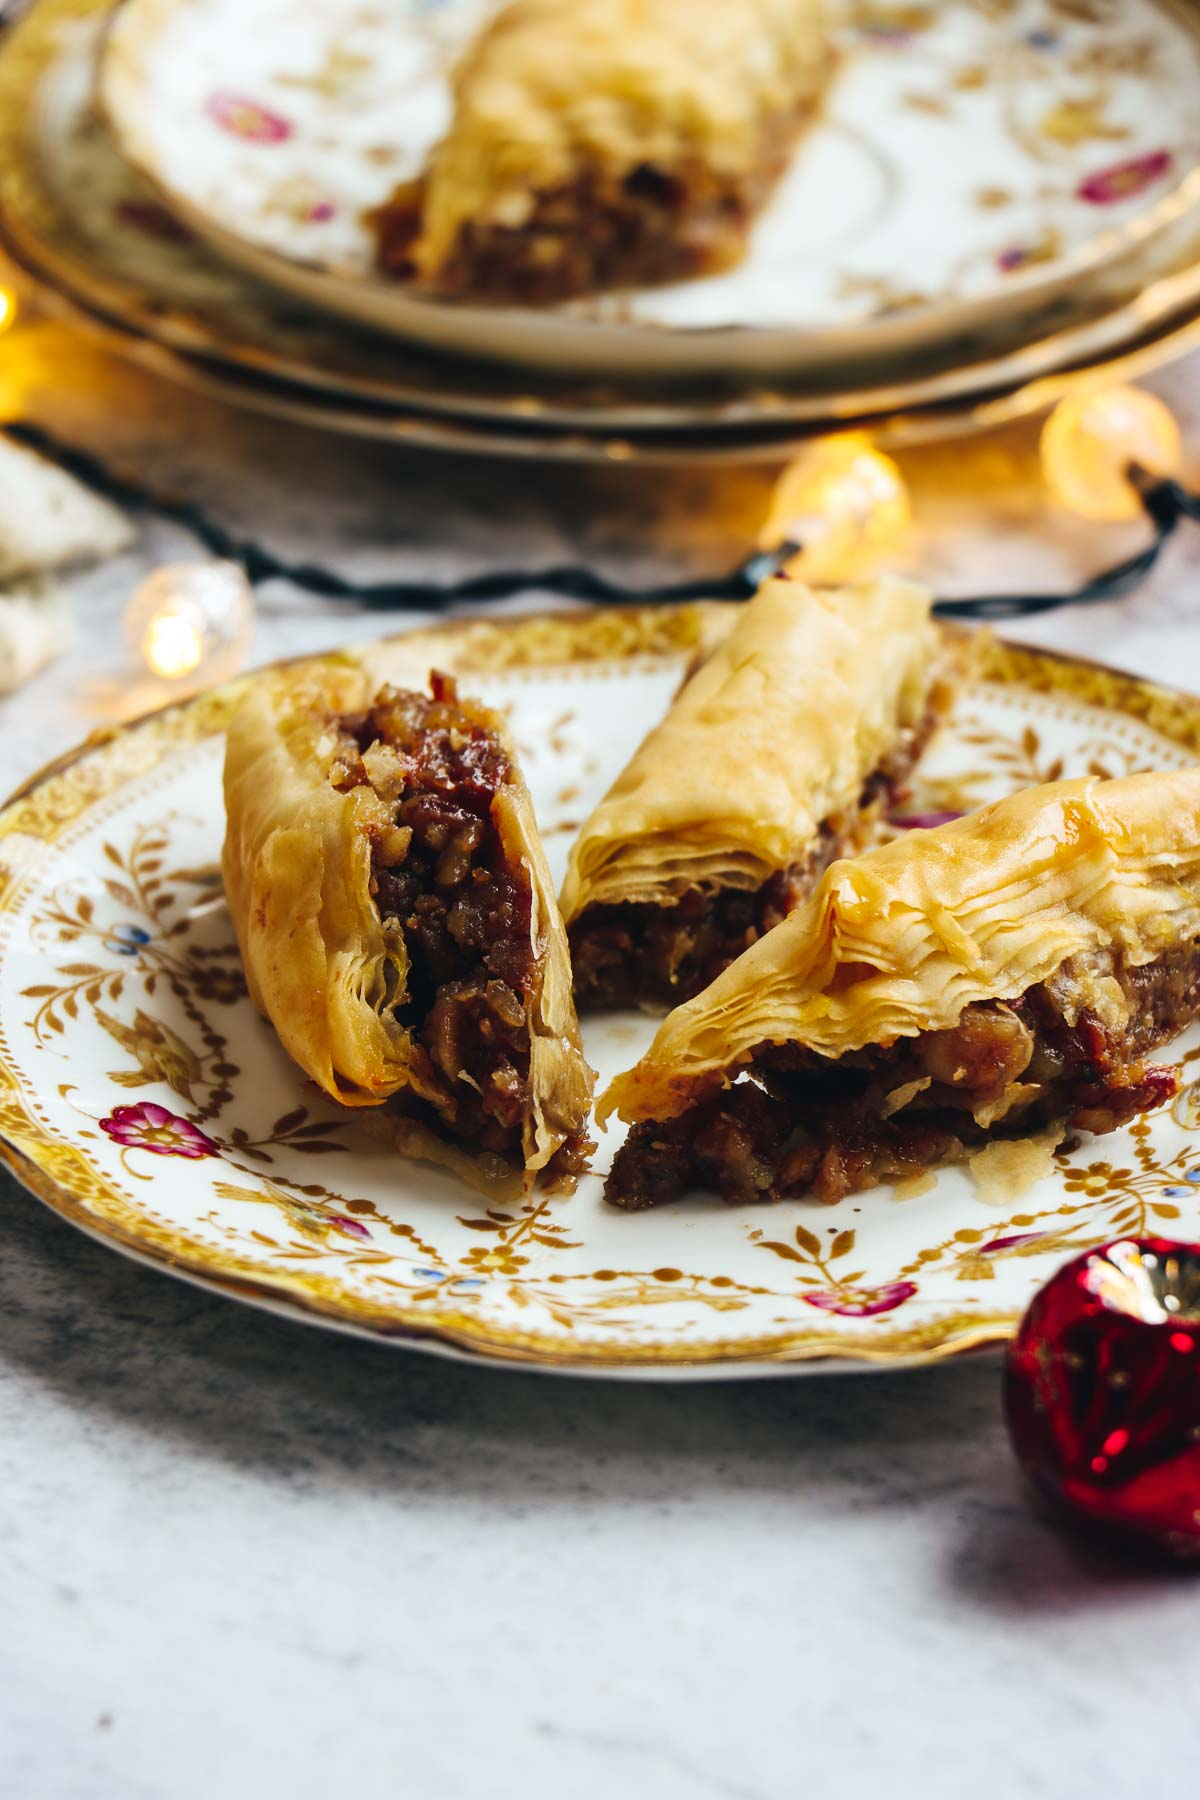 Three pieces of mince pie baklava on a plate.